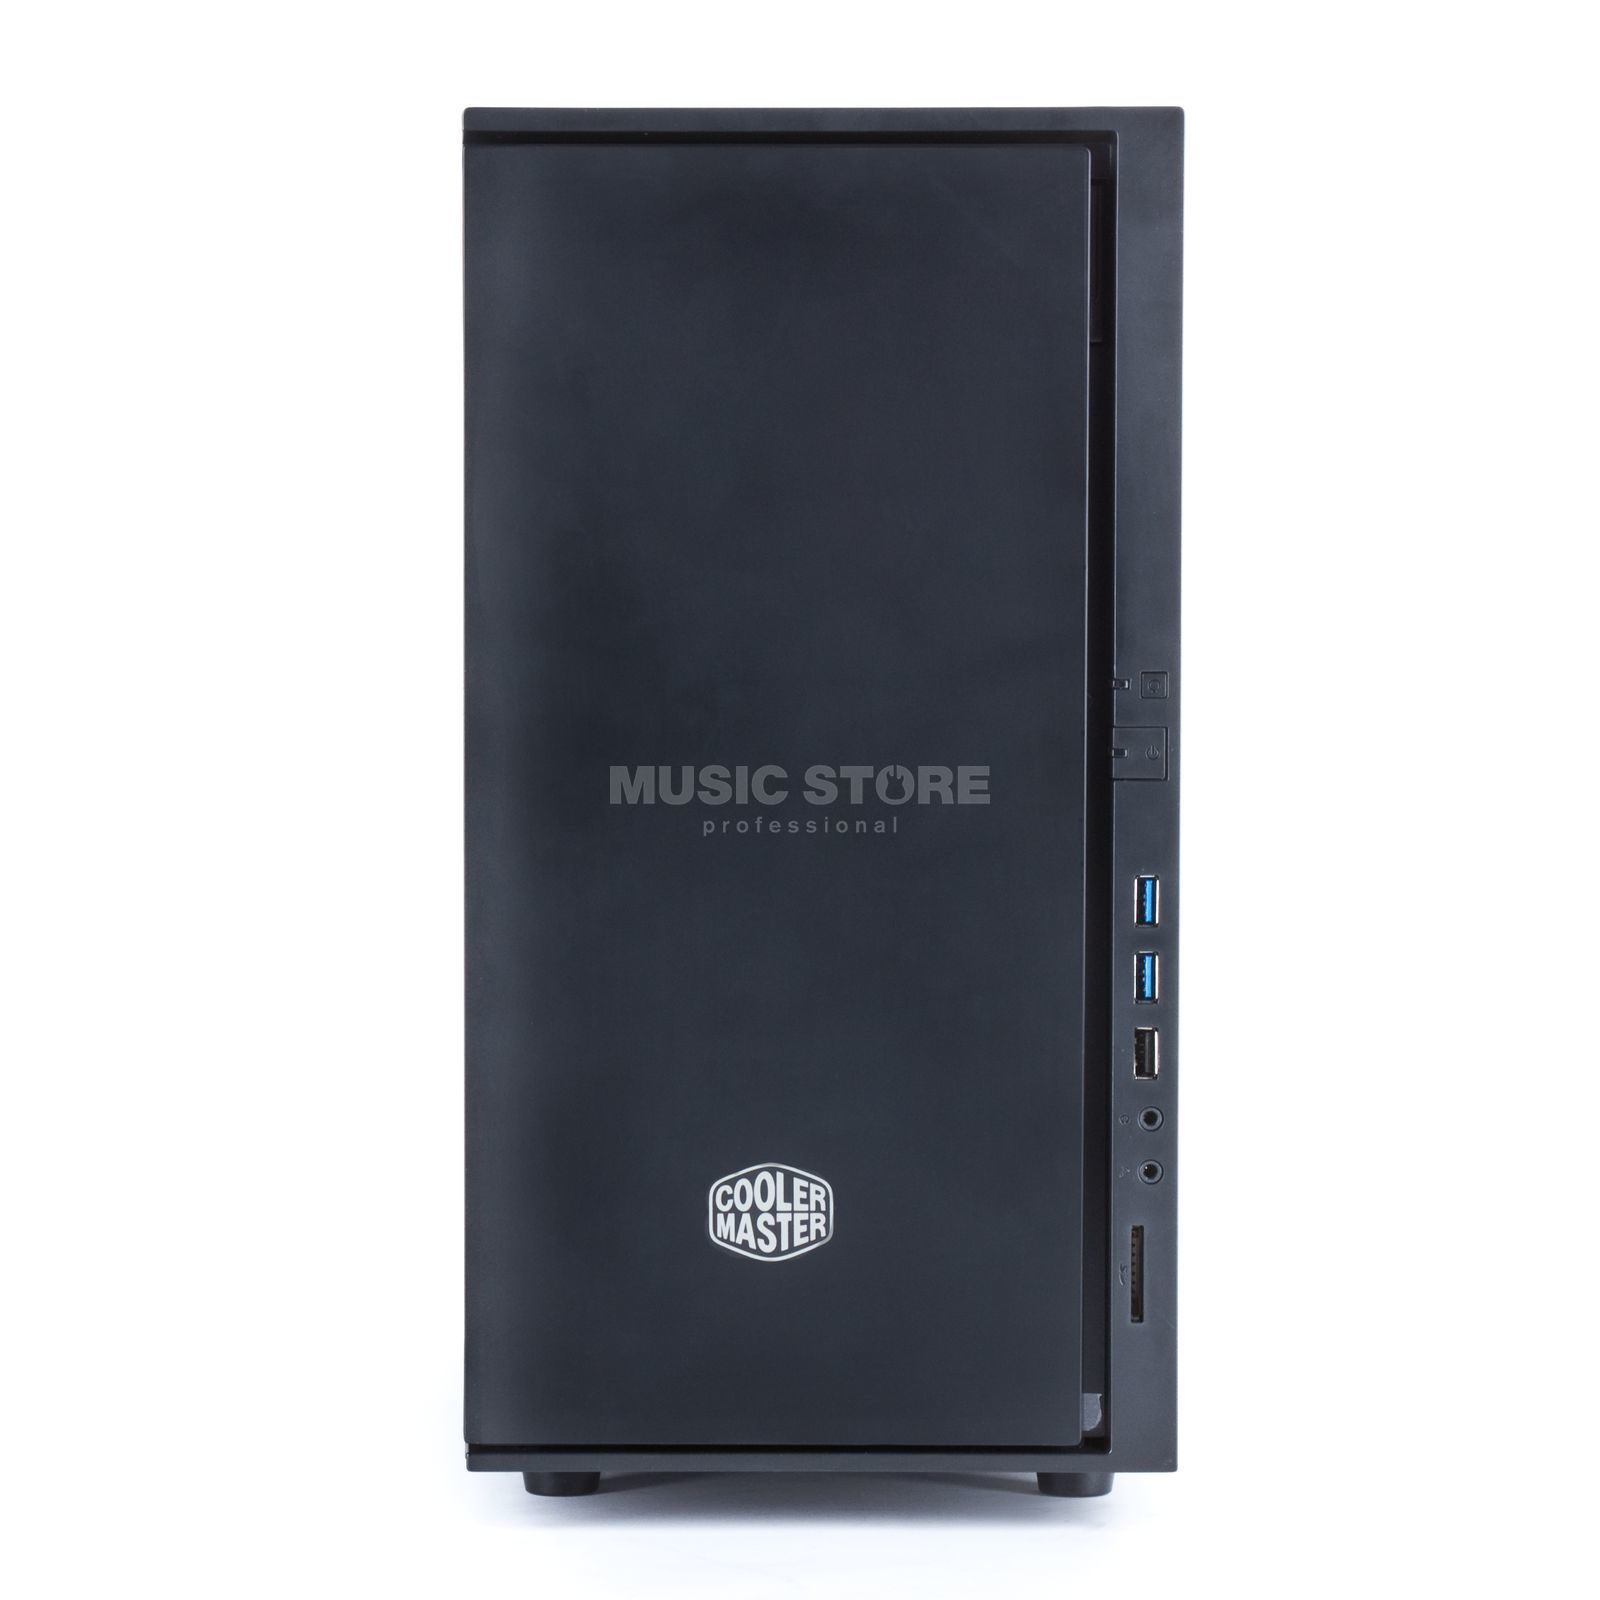 MUSIC STORE Audio PC 2016 HOME Product Image